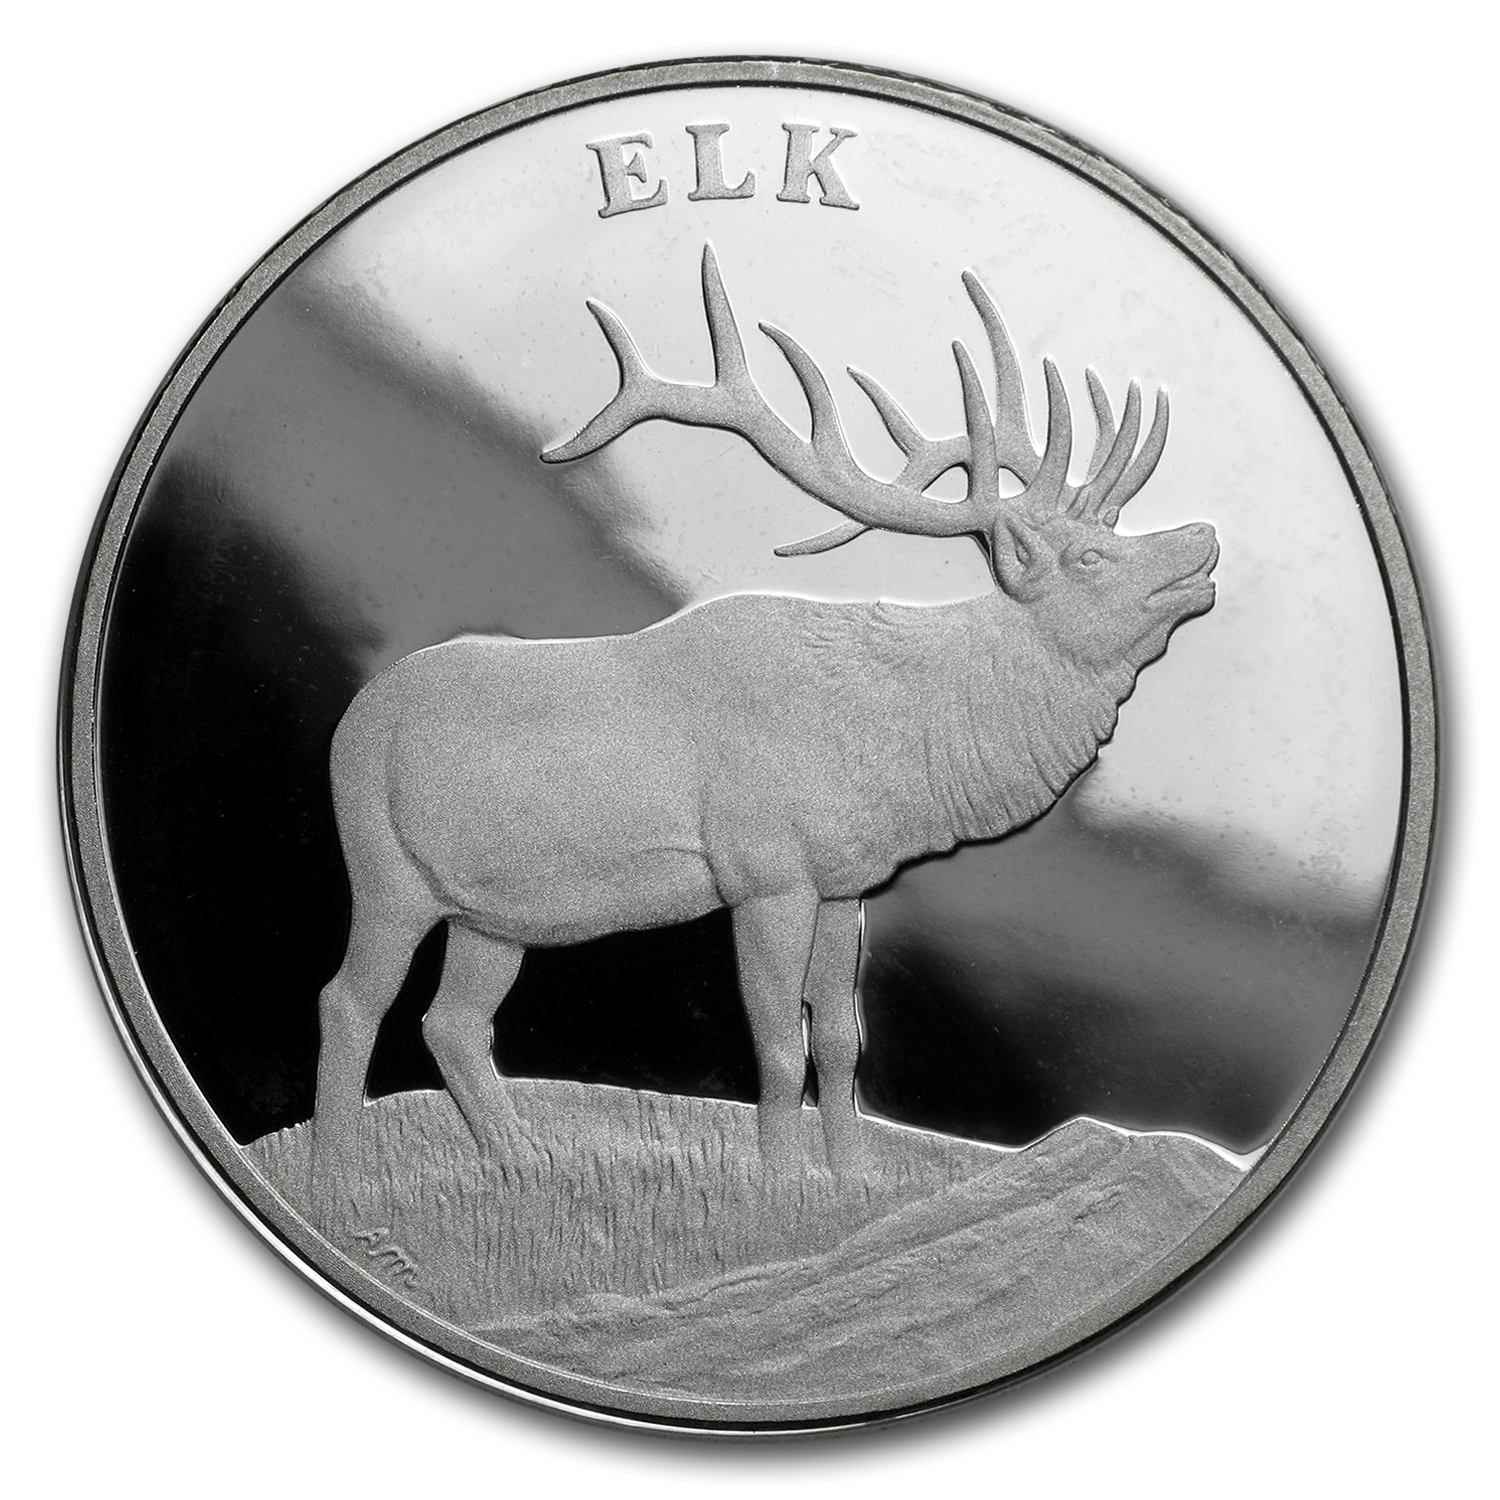 2003 National Wildlife Refuge System Proof Silver Medal - Elk